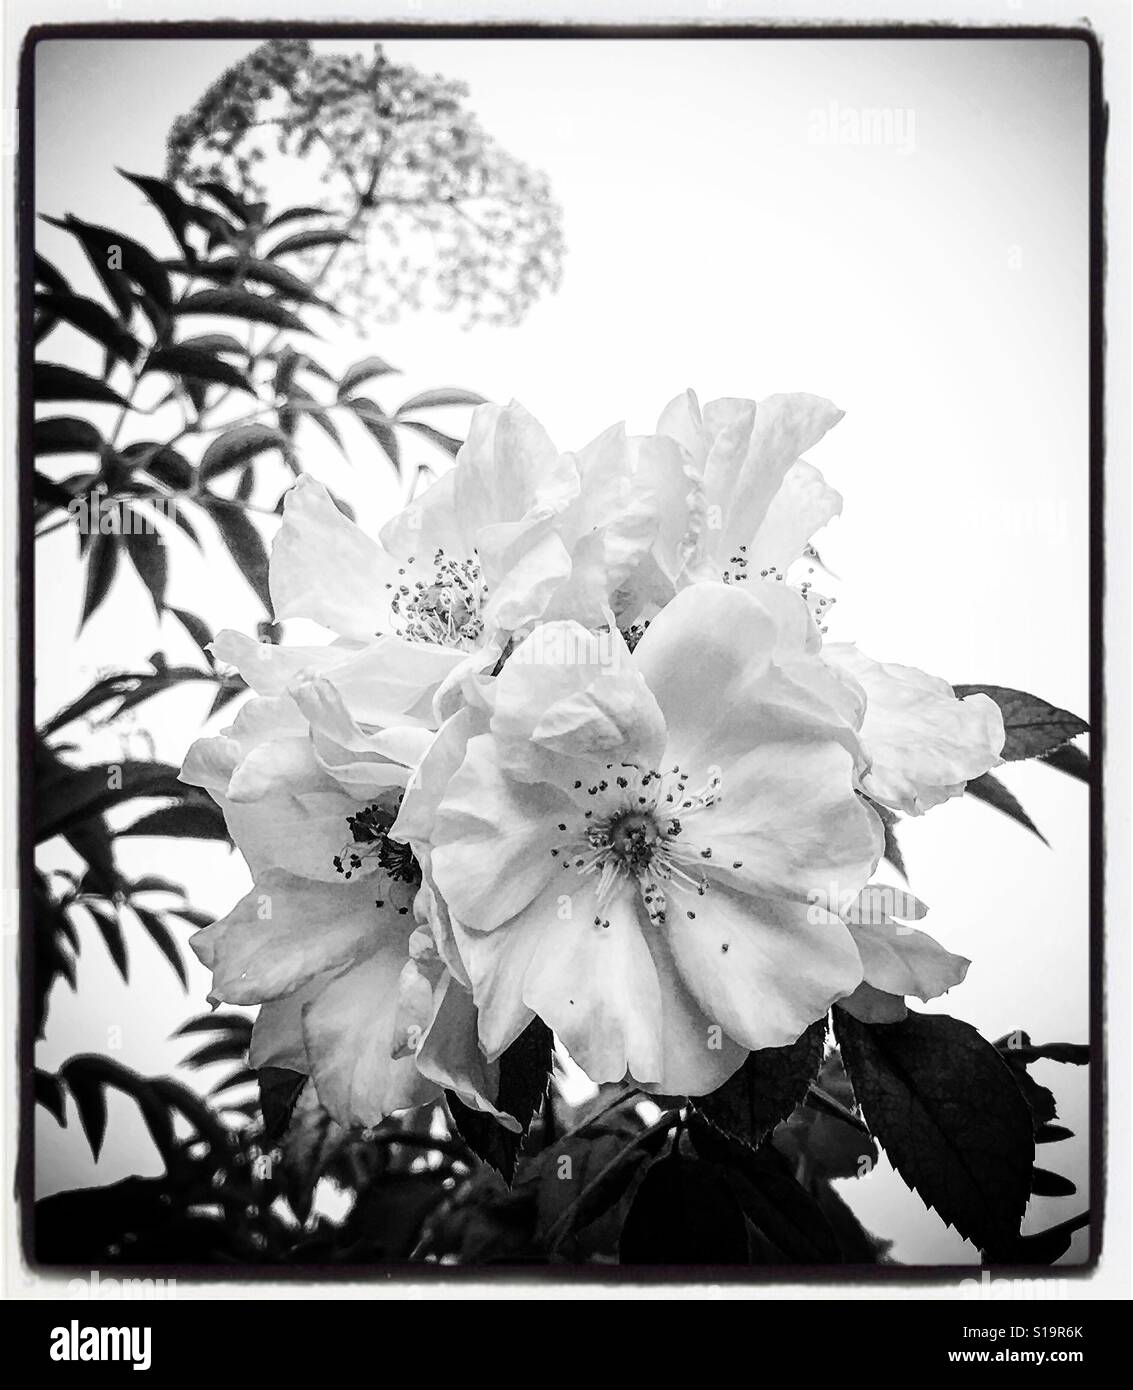 Black and white flowers - Stock Image